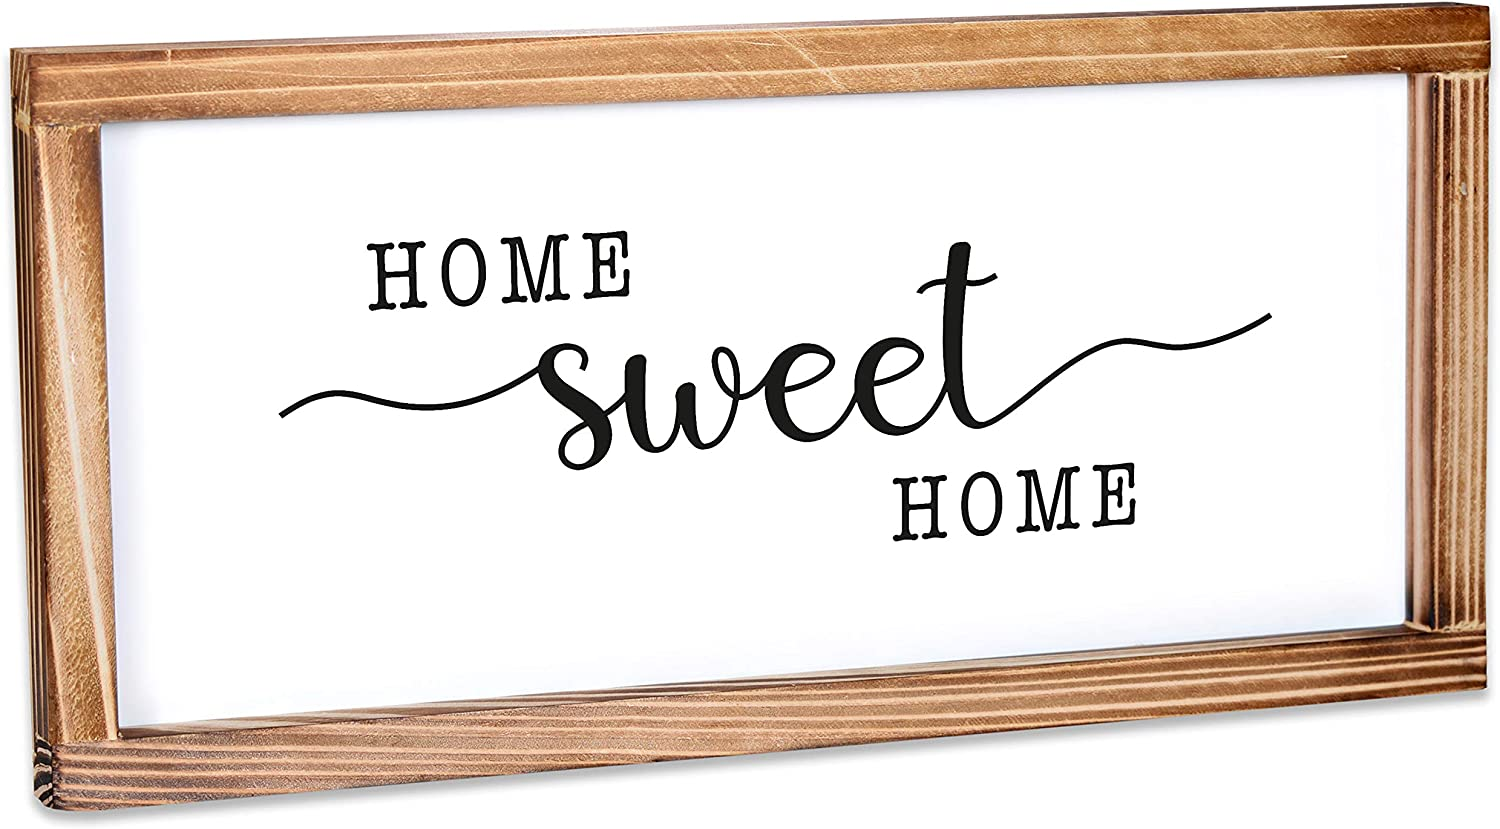 MAINEVENT Home Sweet Home Sign - Rustic Farmhouse Decor for The Home Sign - Wall Decorations for Living Room, Modern Farmhouse Wall Decor, Rustic Home Decor with Solid Wood Frame - 8x17 Inch